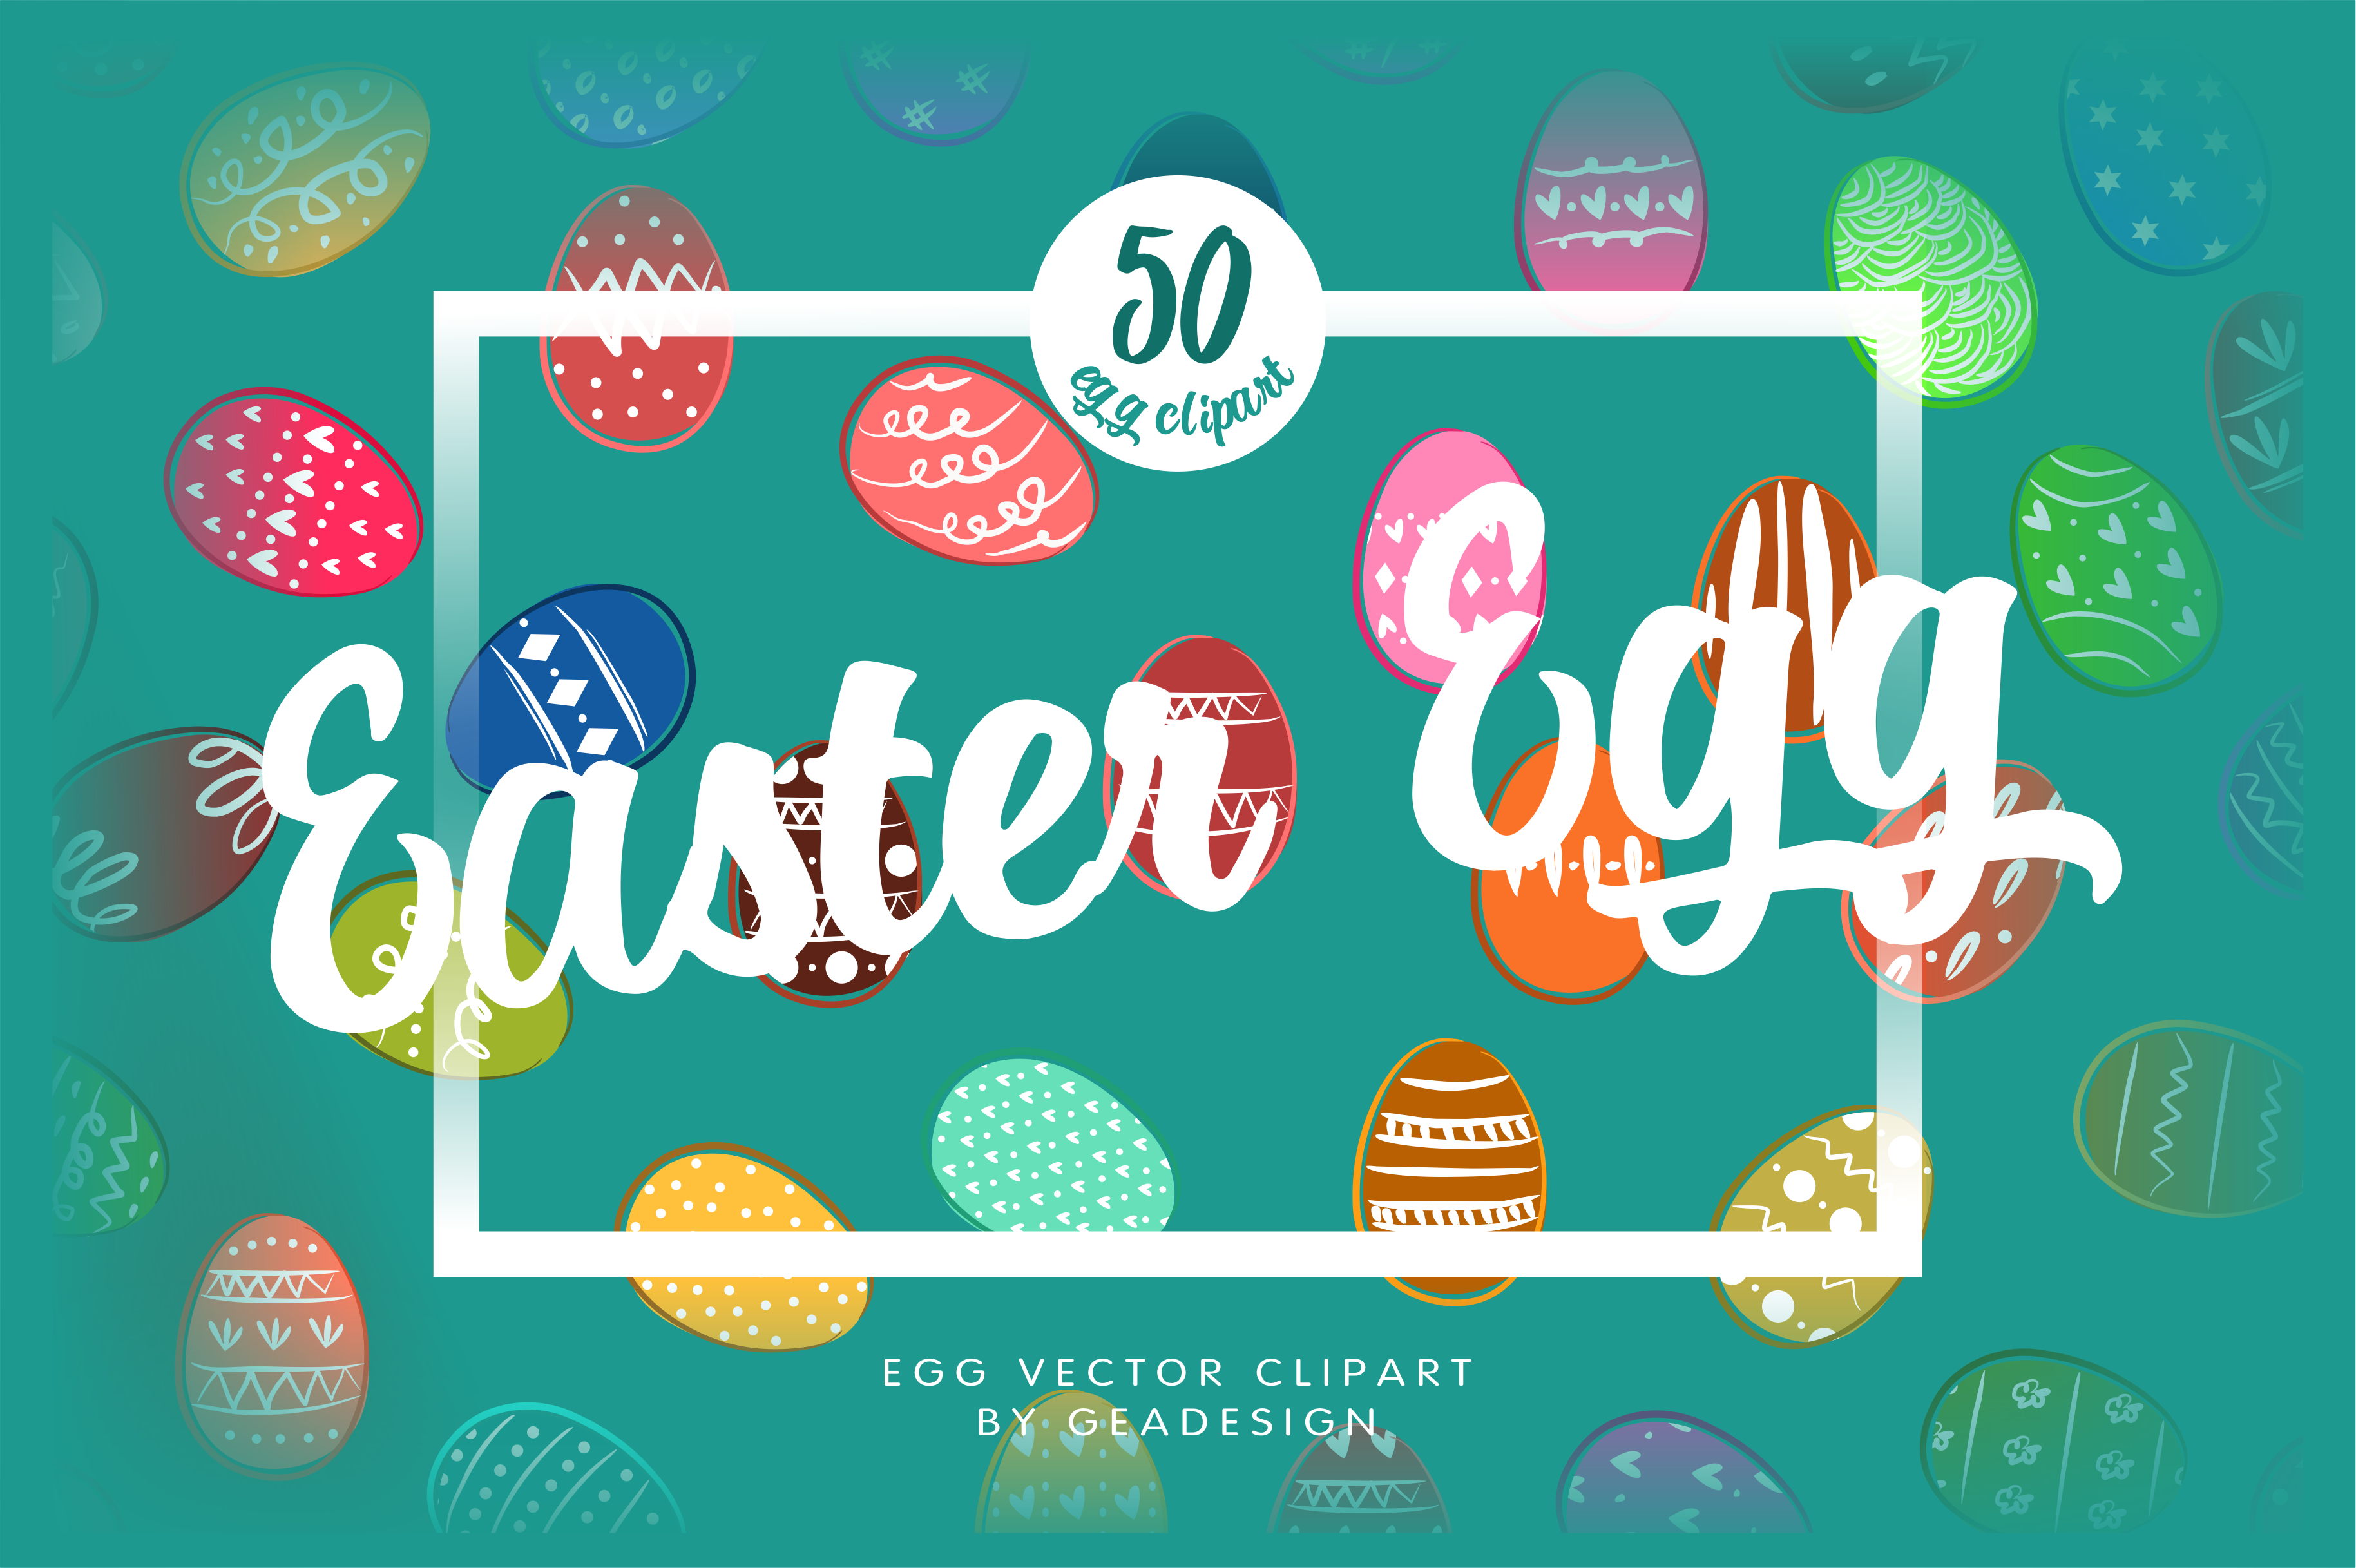 Easter egg vector clipart clipart royalty free download Easter Egg Vector Clipart clipart royalty free download